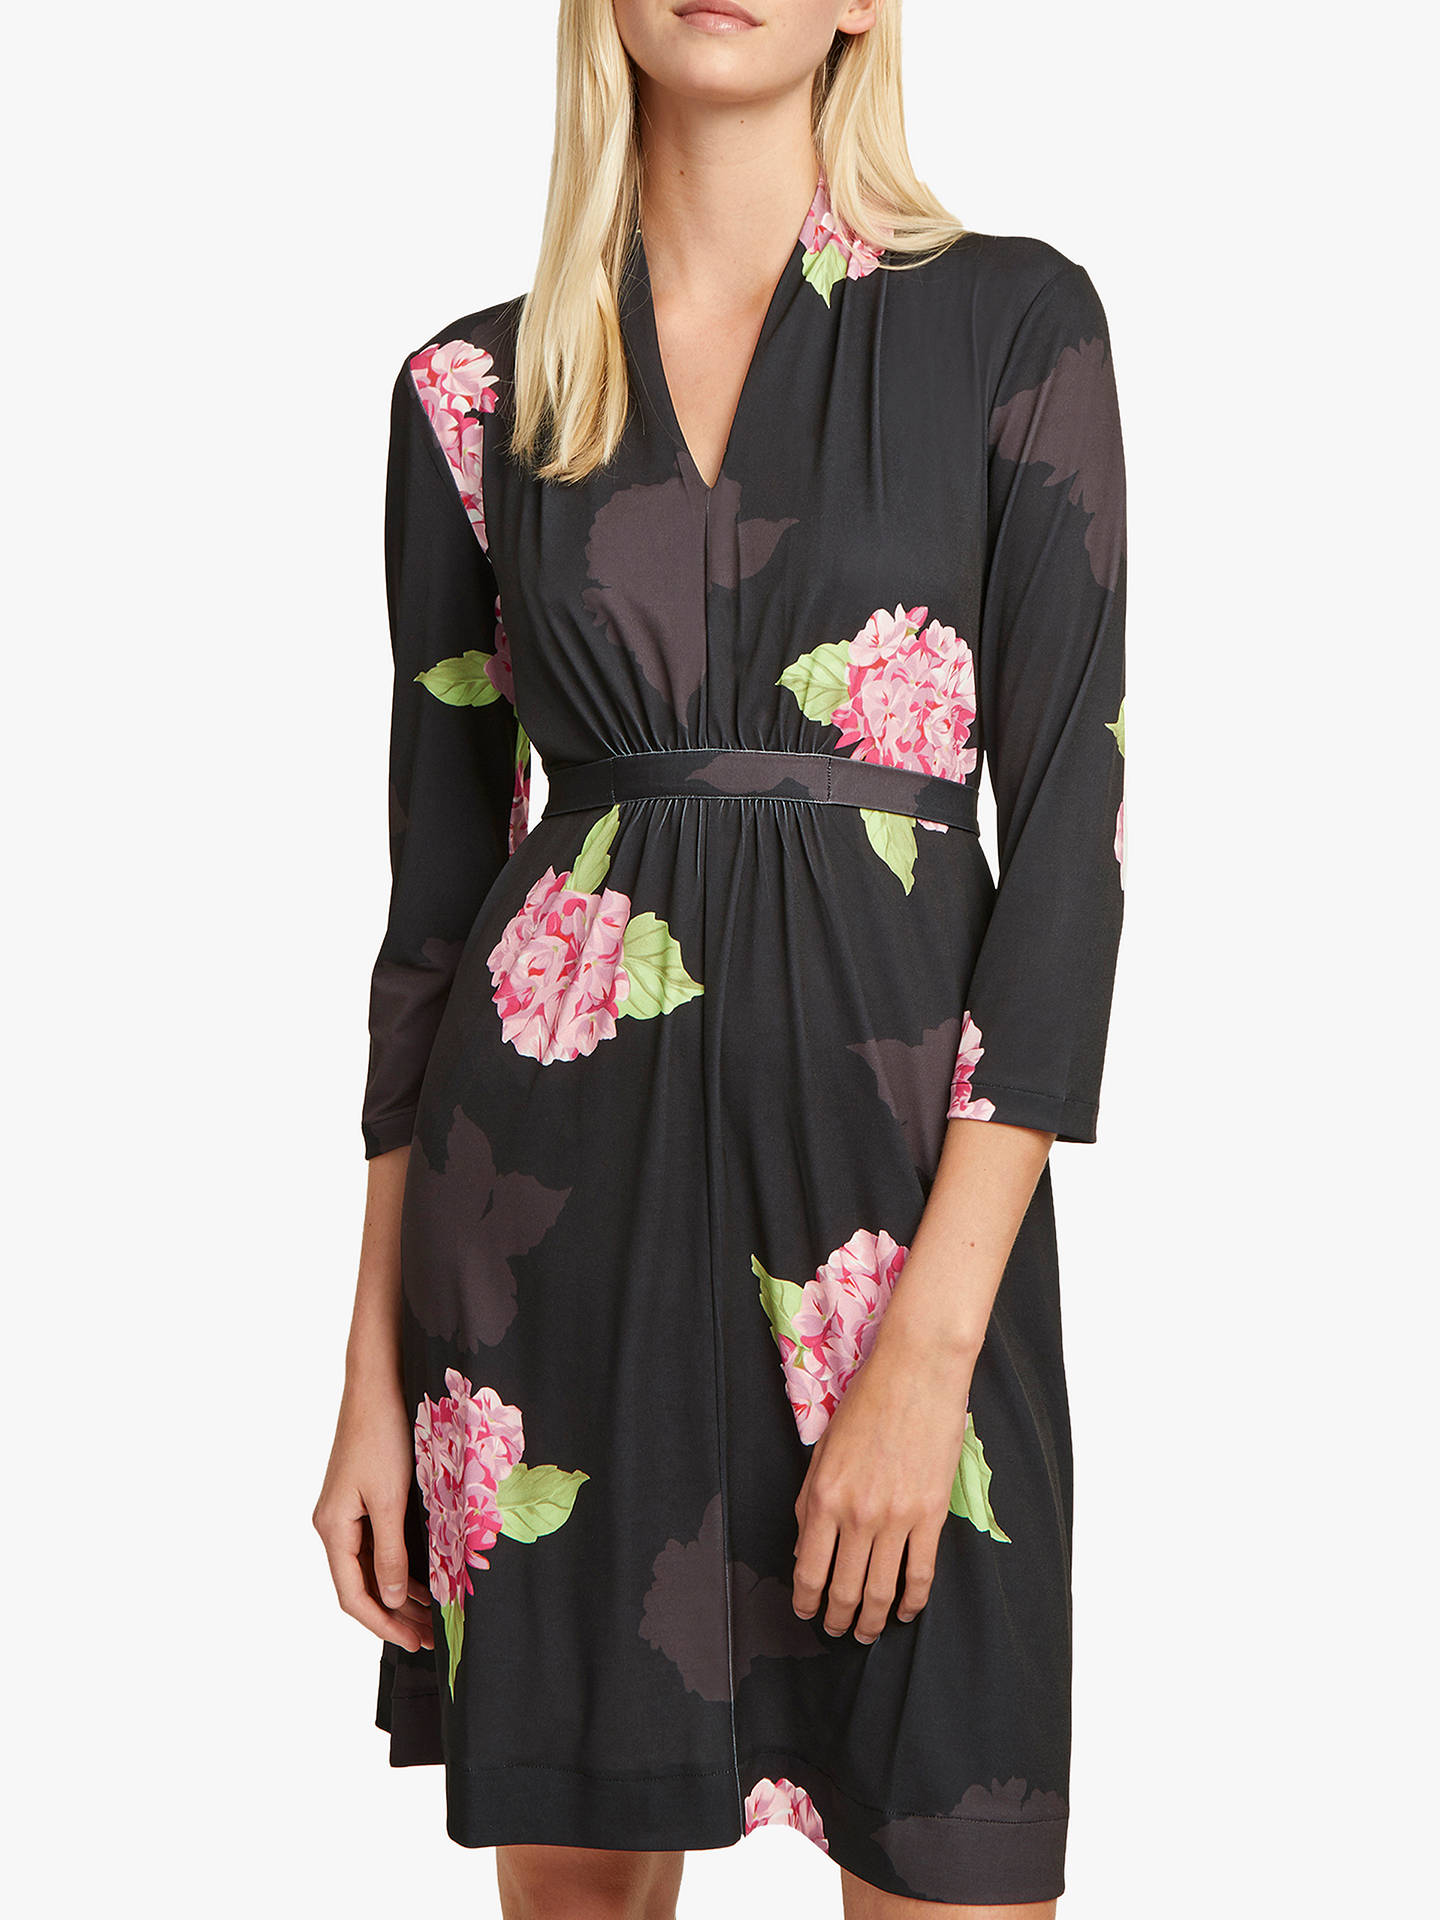 9a0c7525cdb496 Buy French Connection Eleonore Floral Print Dress, Black/Multi, 8 Online at  johnlewis ...